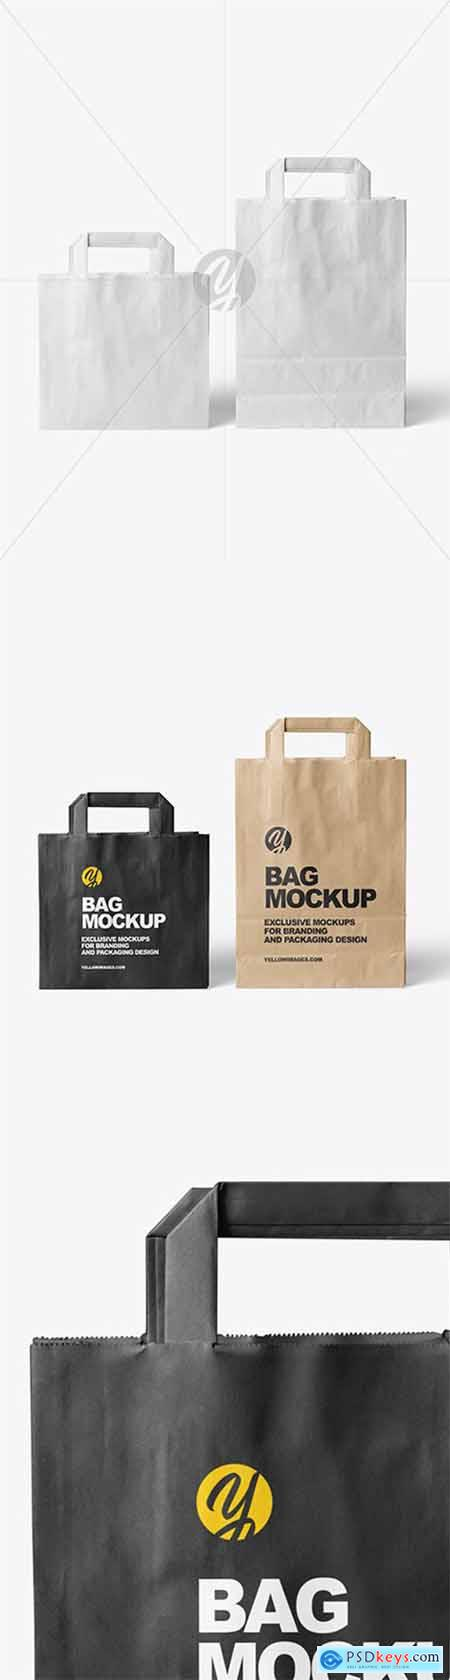 Two Paper Bags 51769